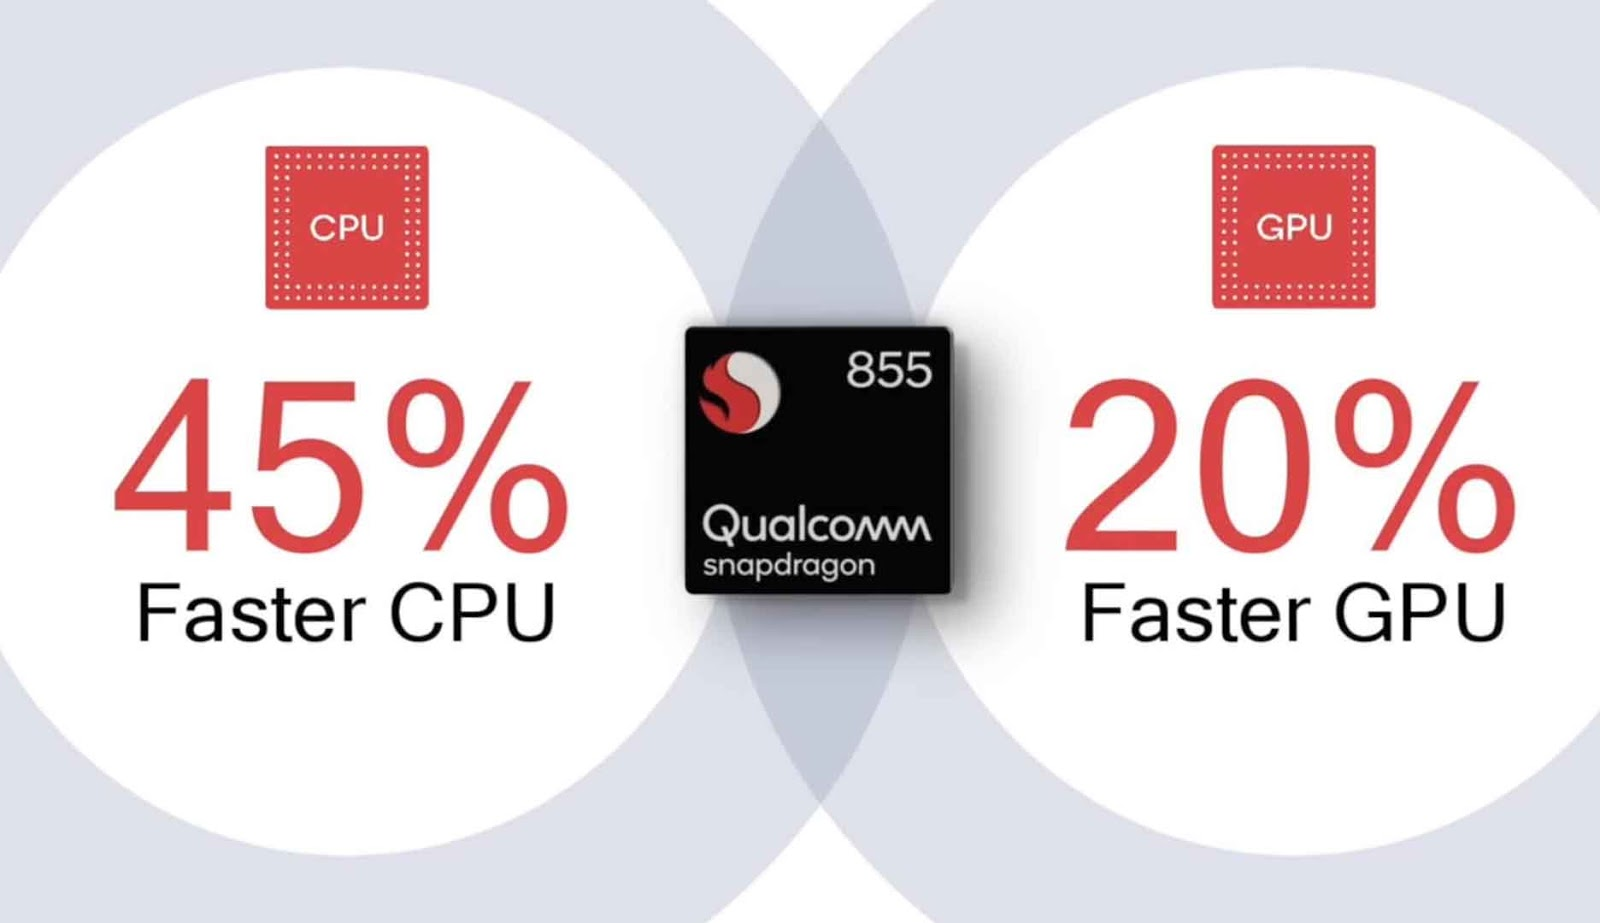 Qualcomm Snapdragon 855 Features 5G, AI, 7nm Technology